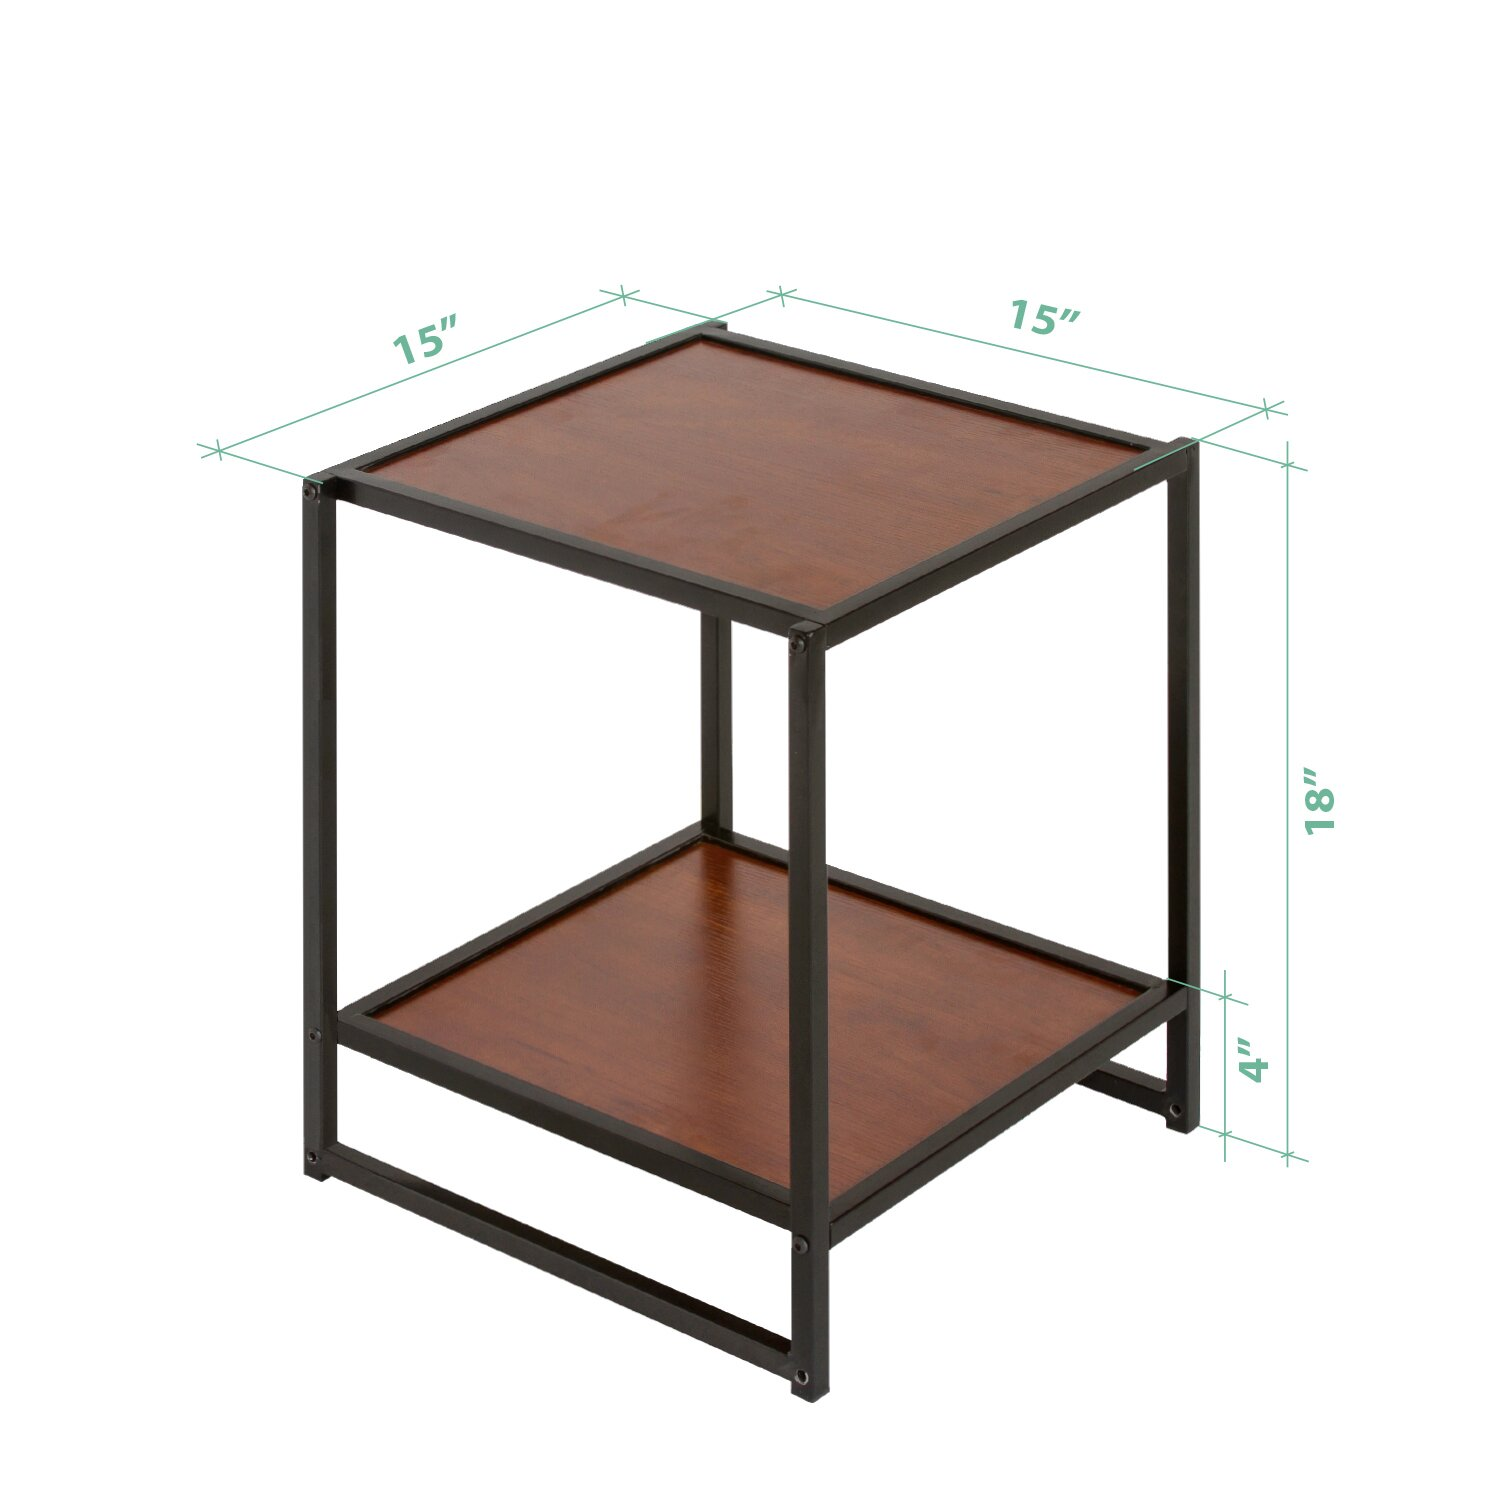 Zinus modern studio end table reviews wayfair for 11 inch table